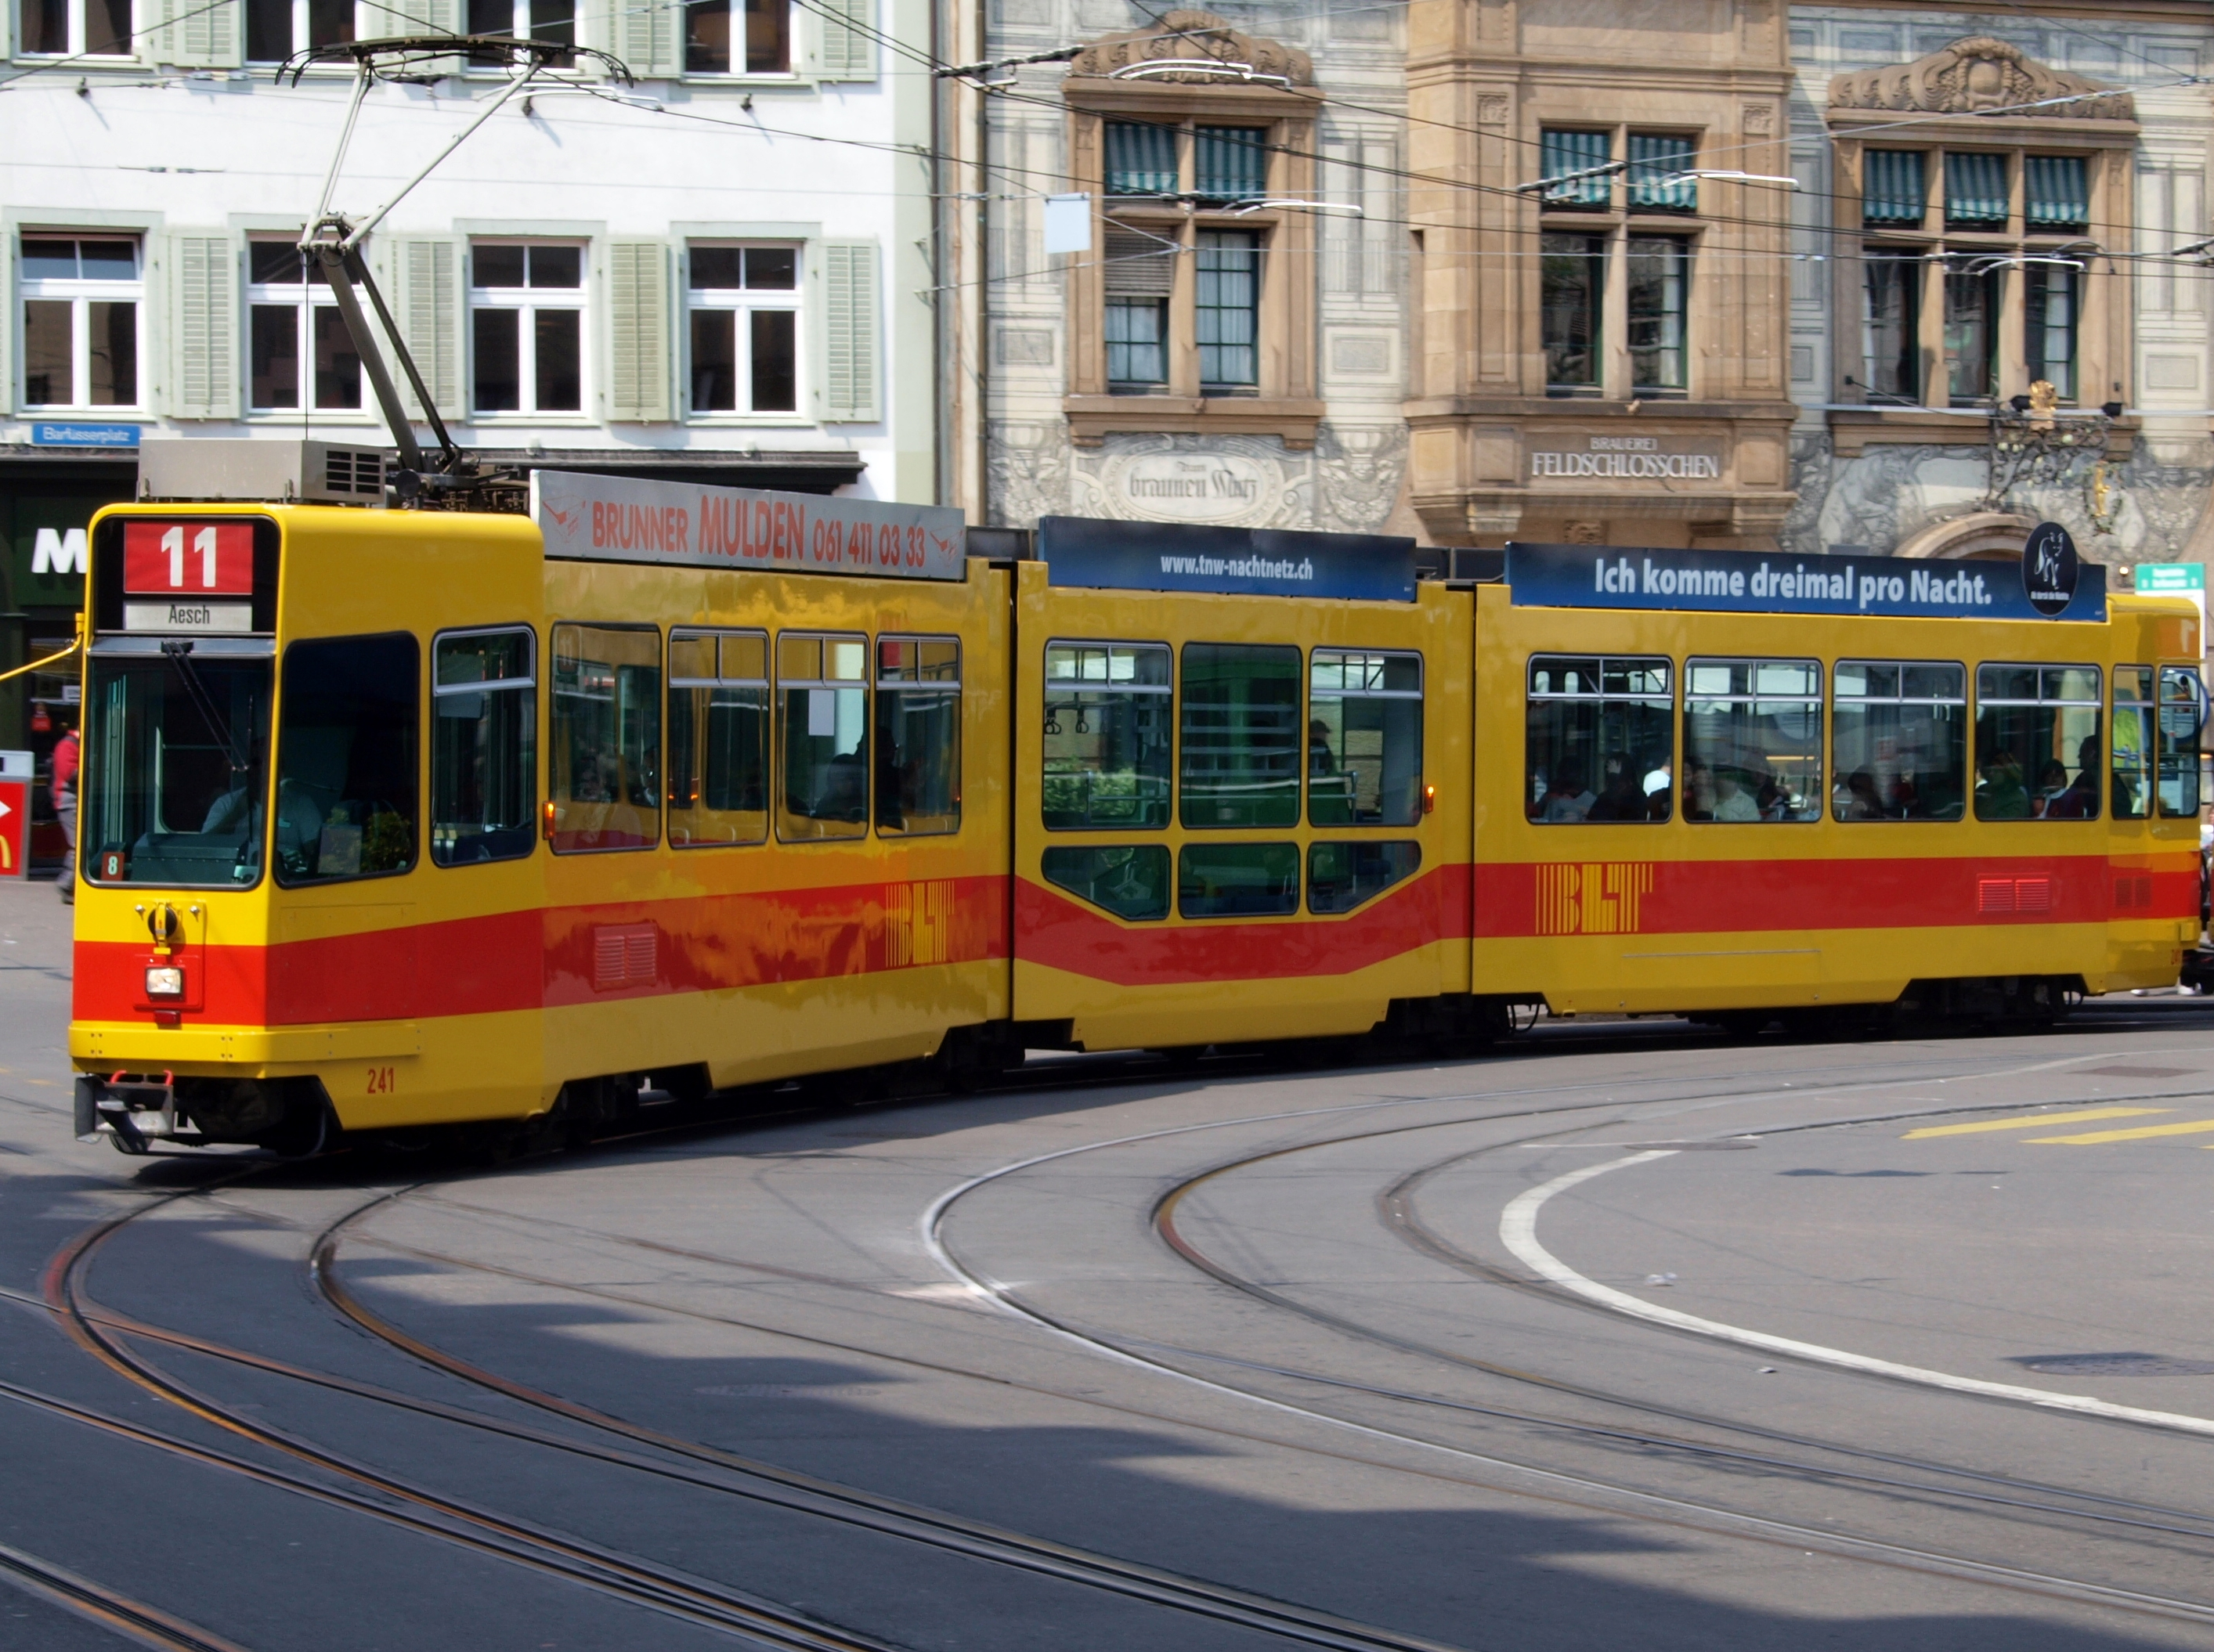 2 Person Car >> File:BLT Tram car 241, line 11 towards Aesch at Basel, Switserland.JPG - Wikimedia Commons